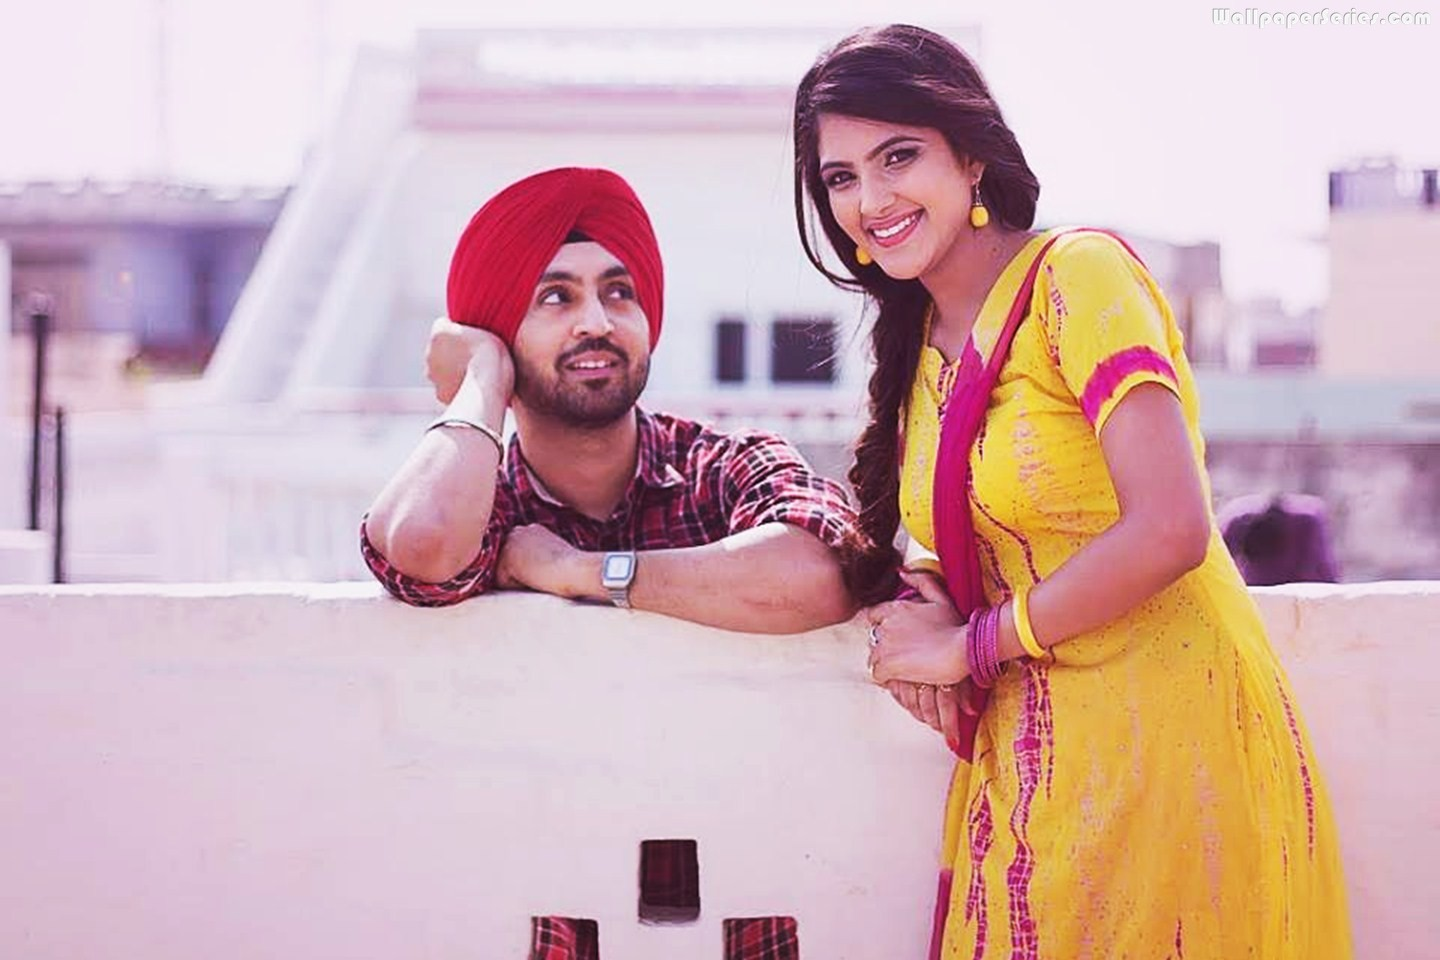 Punjabi Couple Wallpapers HD Pictures One HD Wallpaper Pictures 1440x960